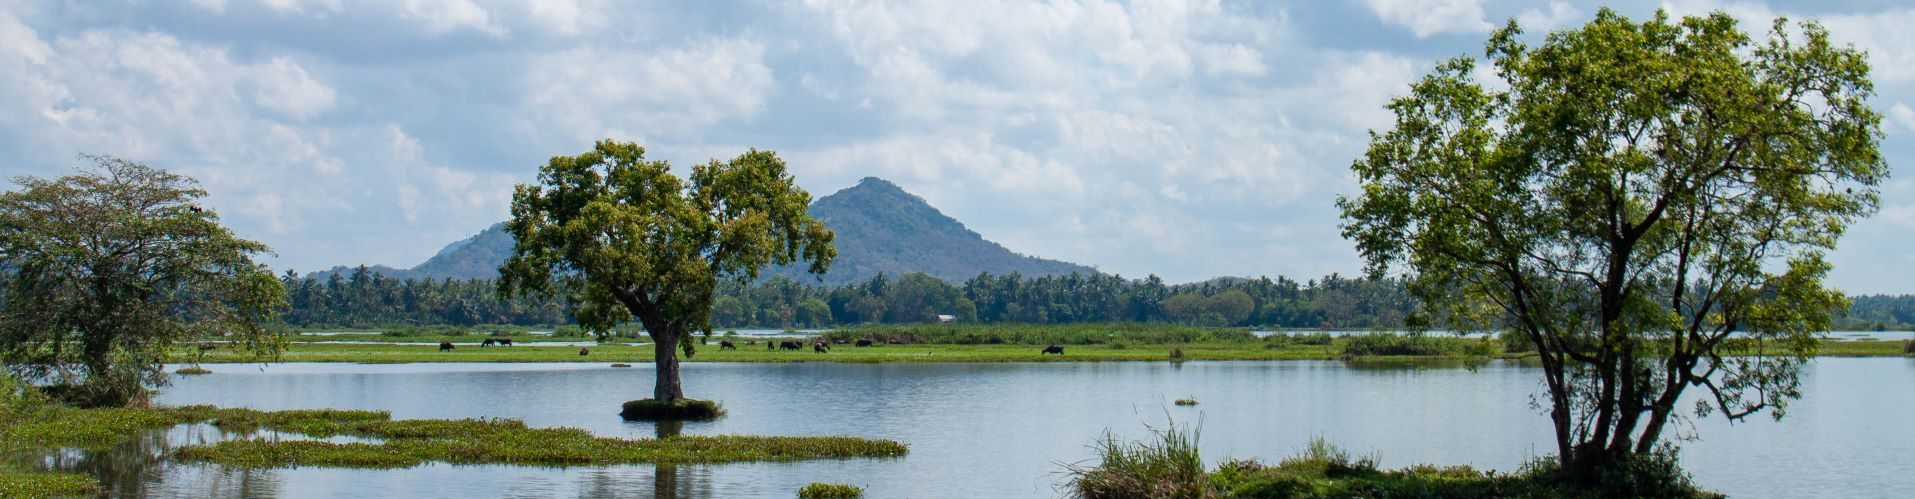 Tissa-Lake-Sri-Lanka